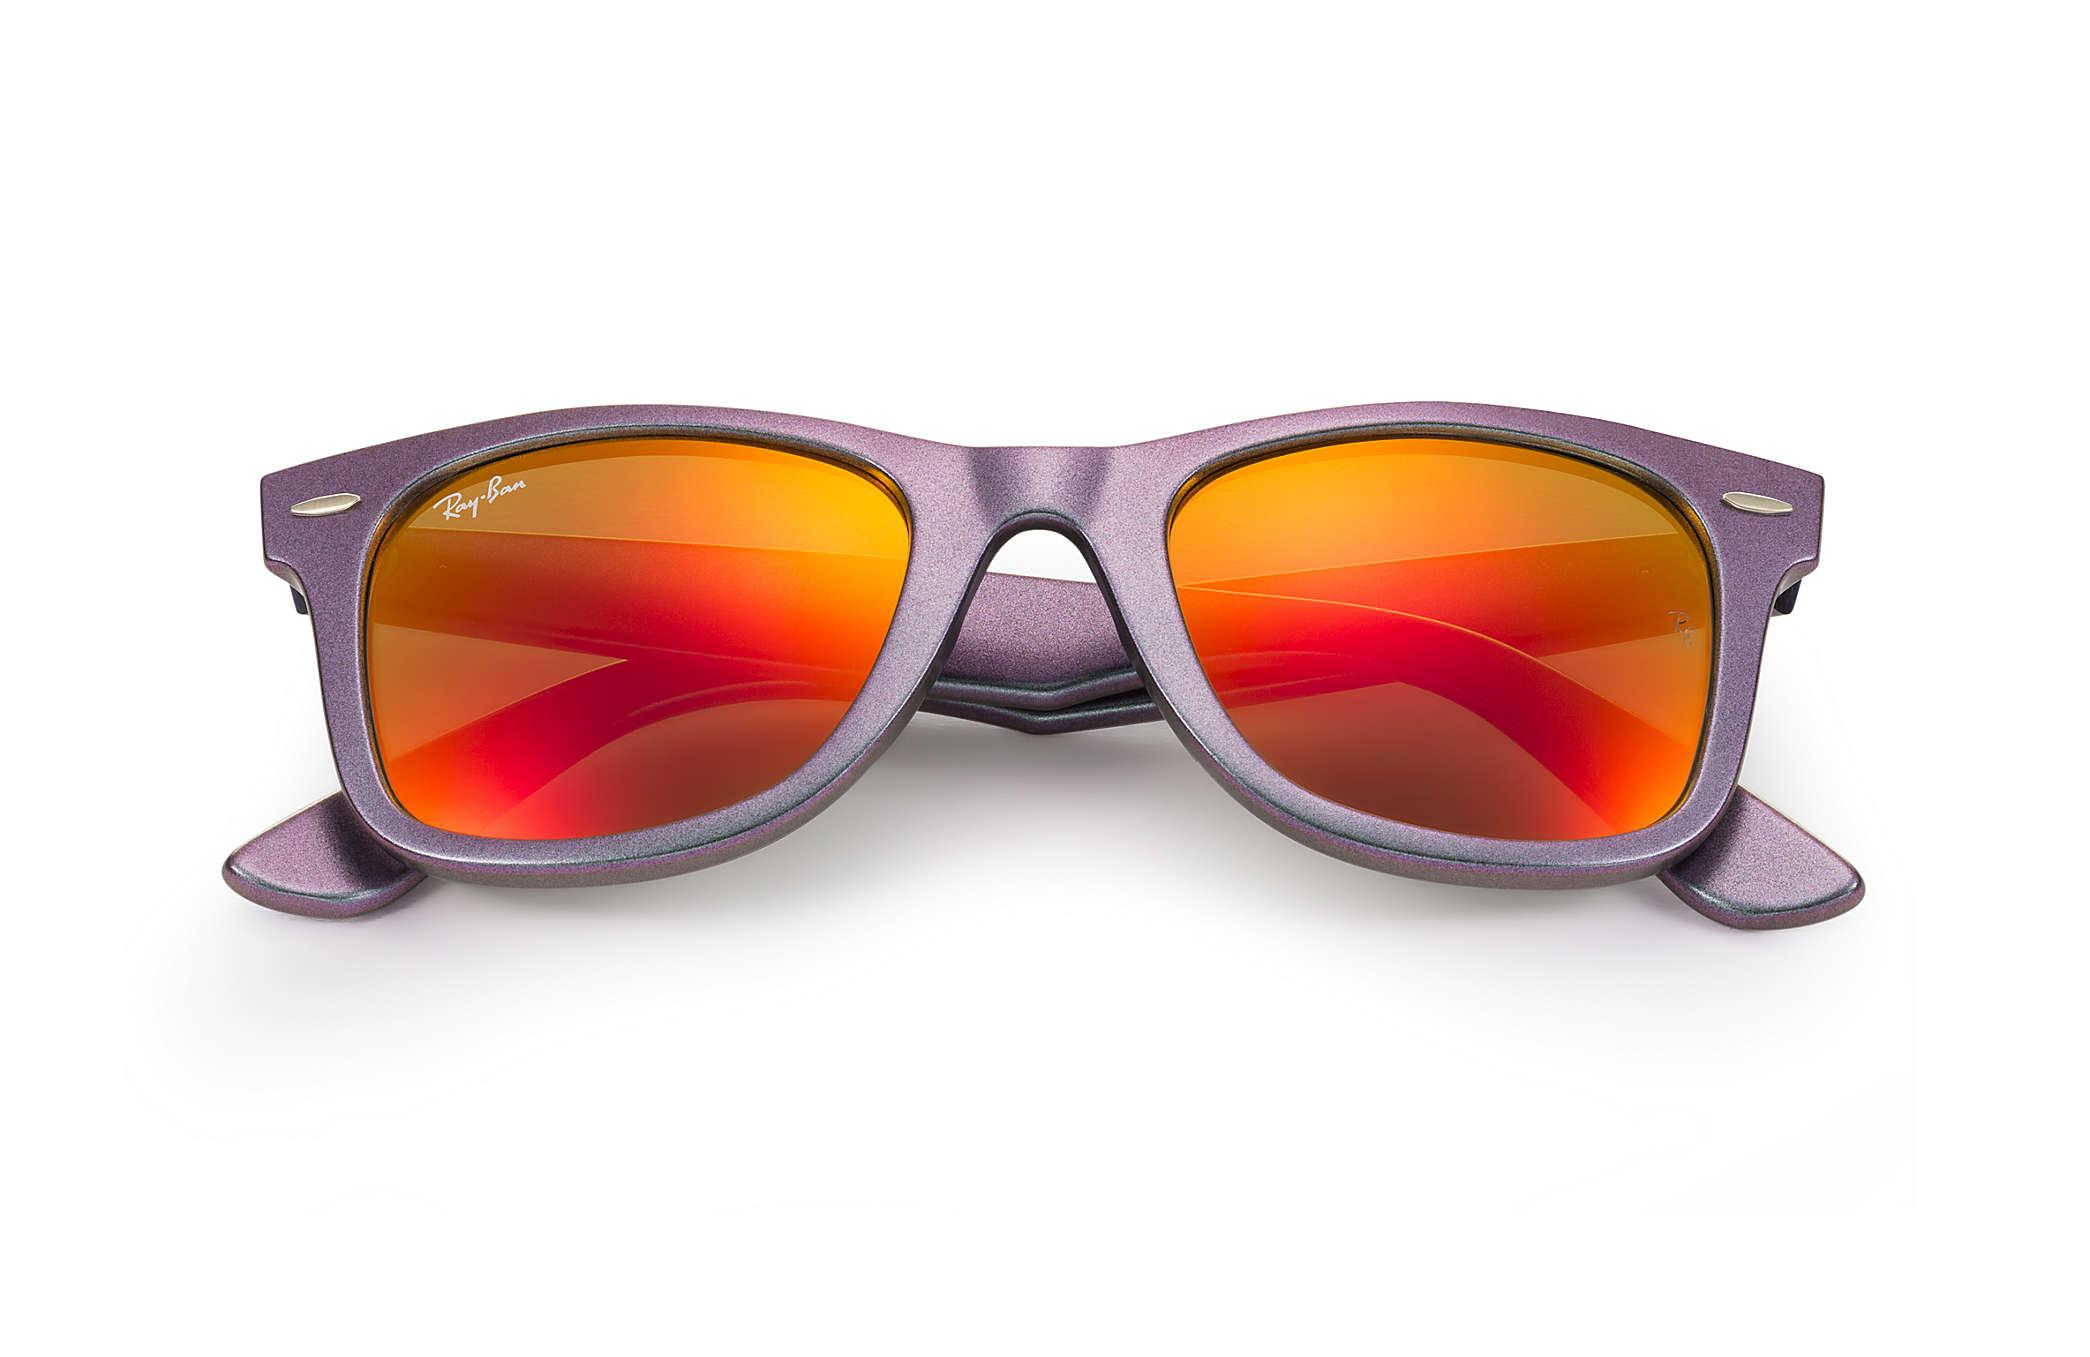 514a157b762ea Ray-Ban - Orange Original Wayfarer Cosmo - Lyst. View fullscreen